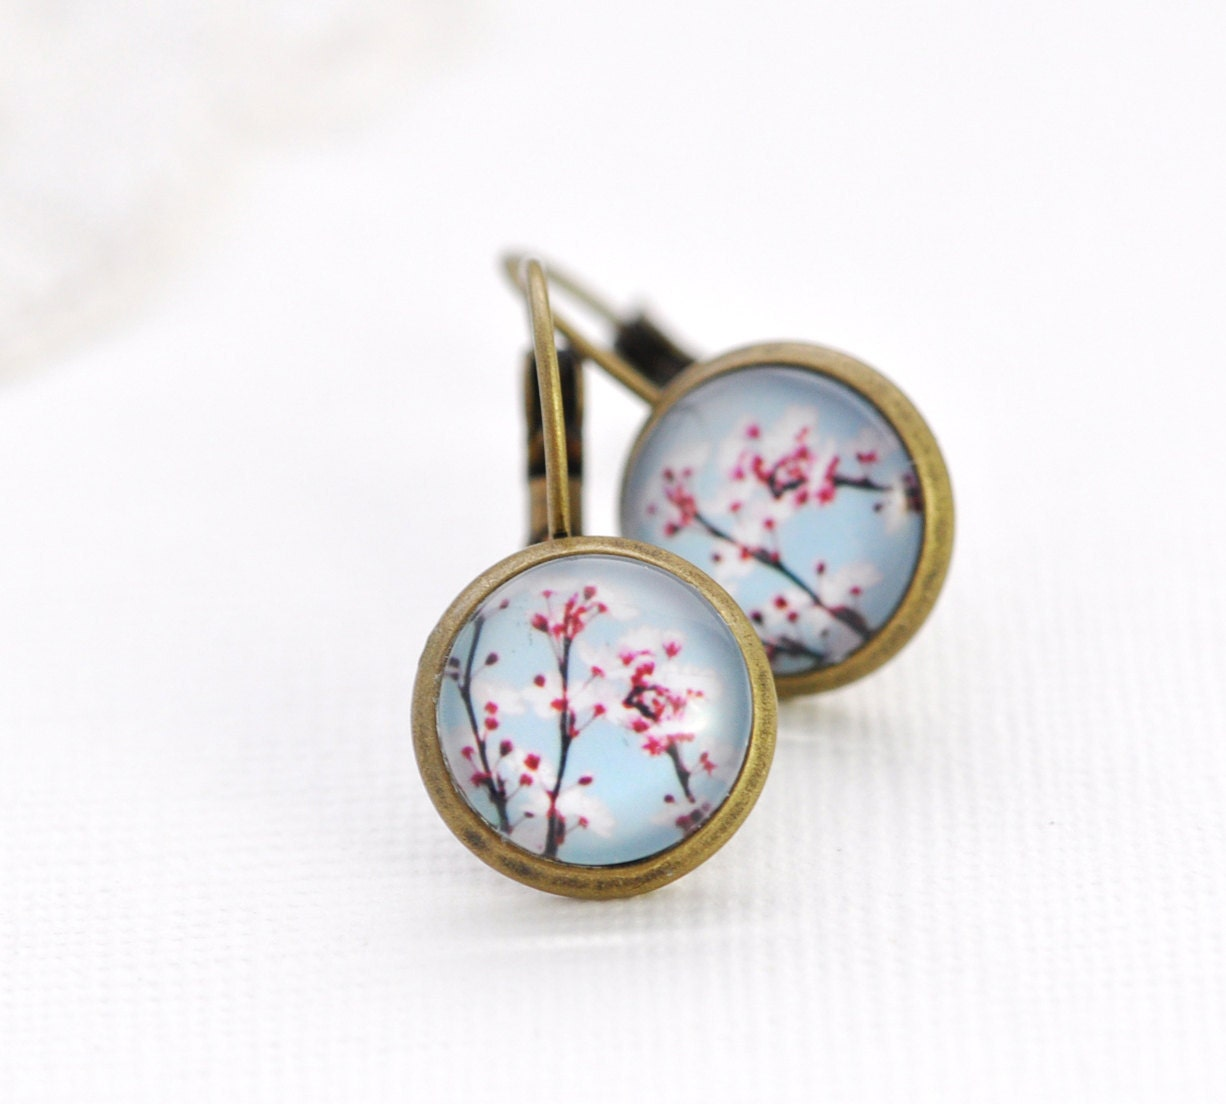 Cherry Blossoms Earrings Wearable Photo Art Vintage Inspired - Shabby Chic- Pink and Blue